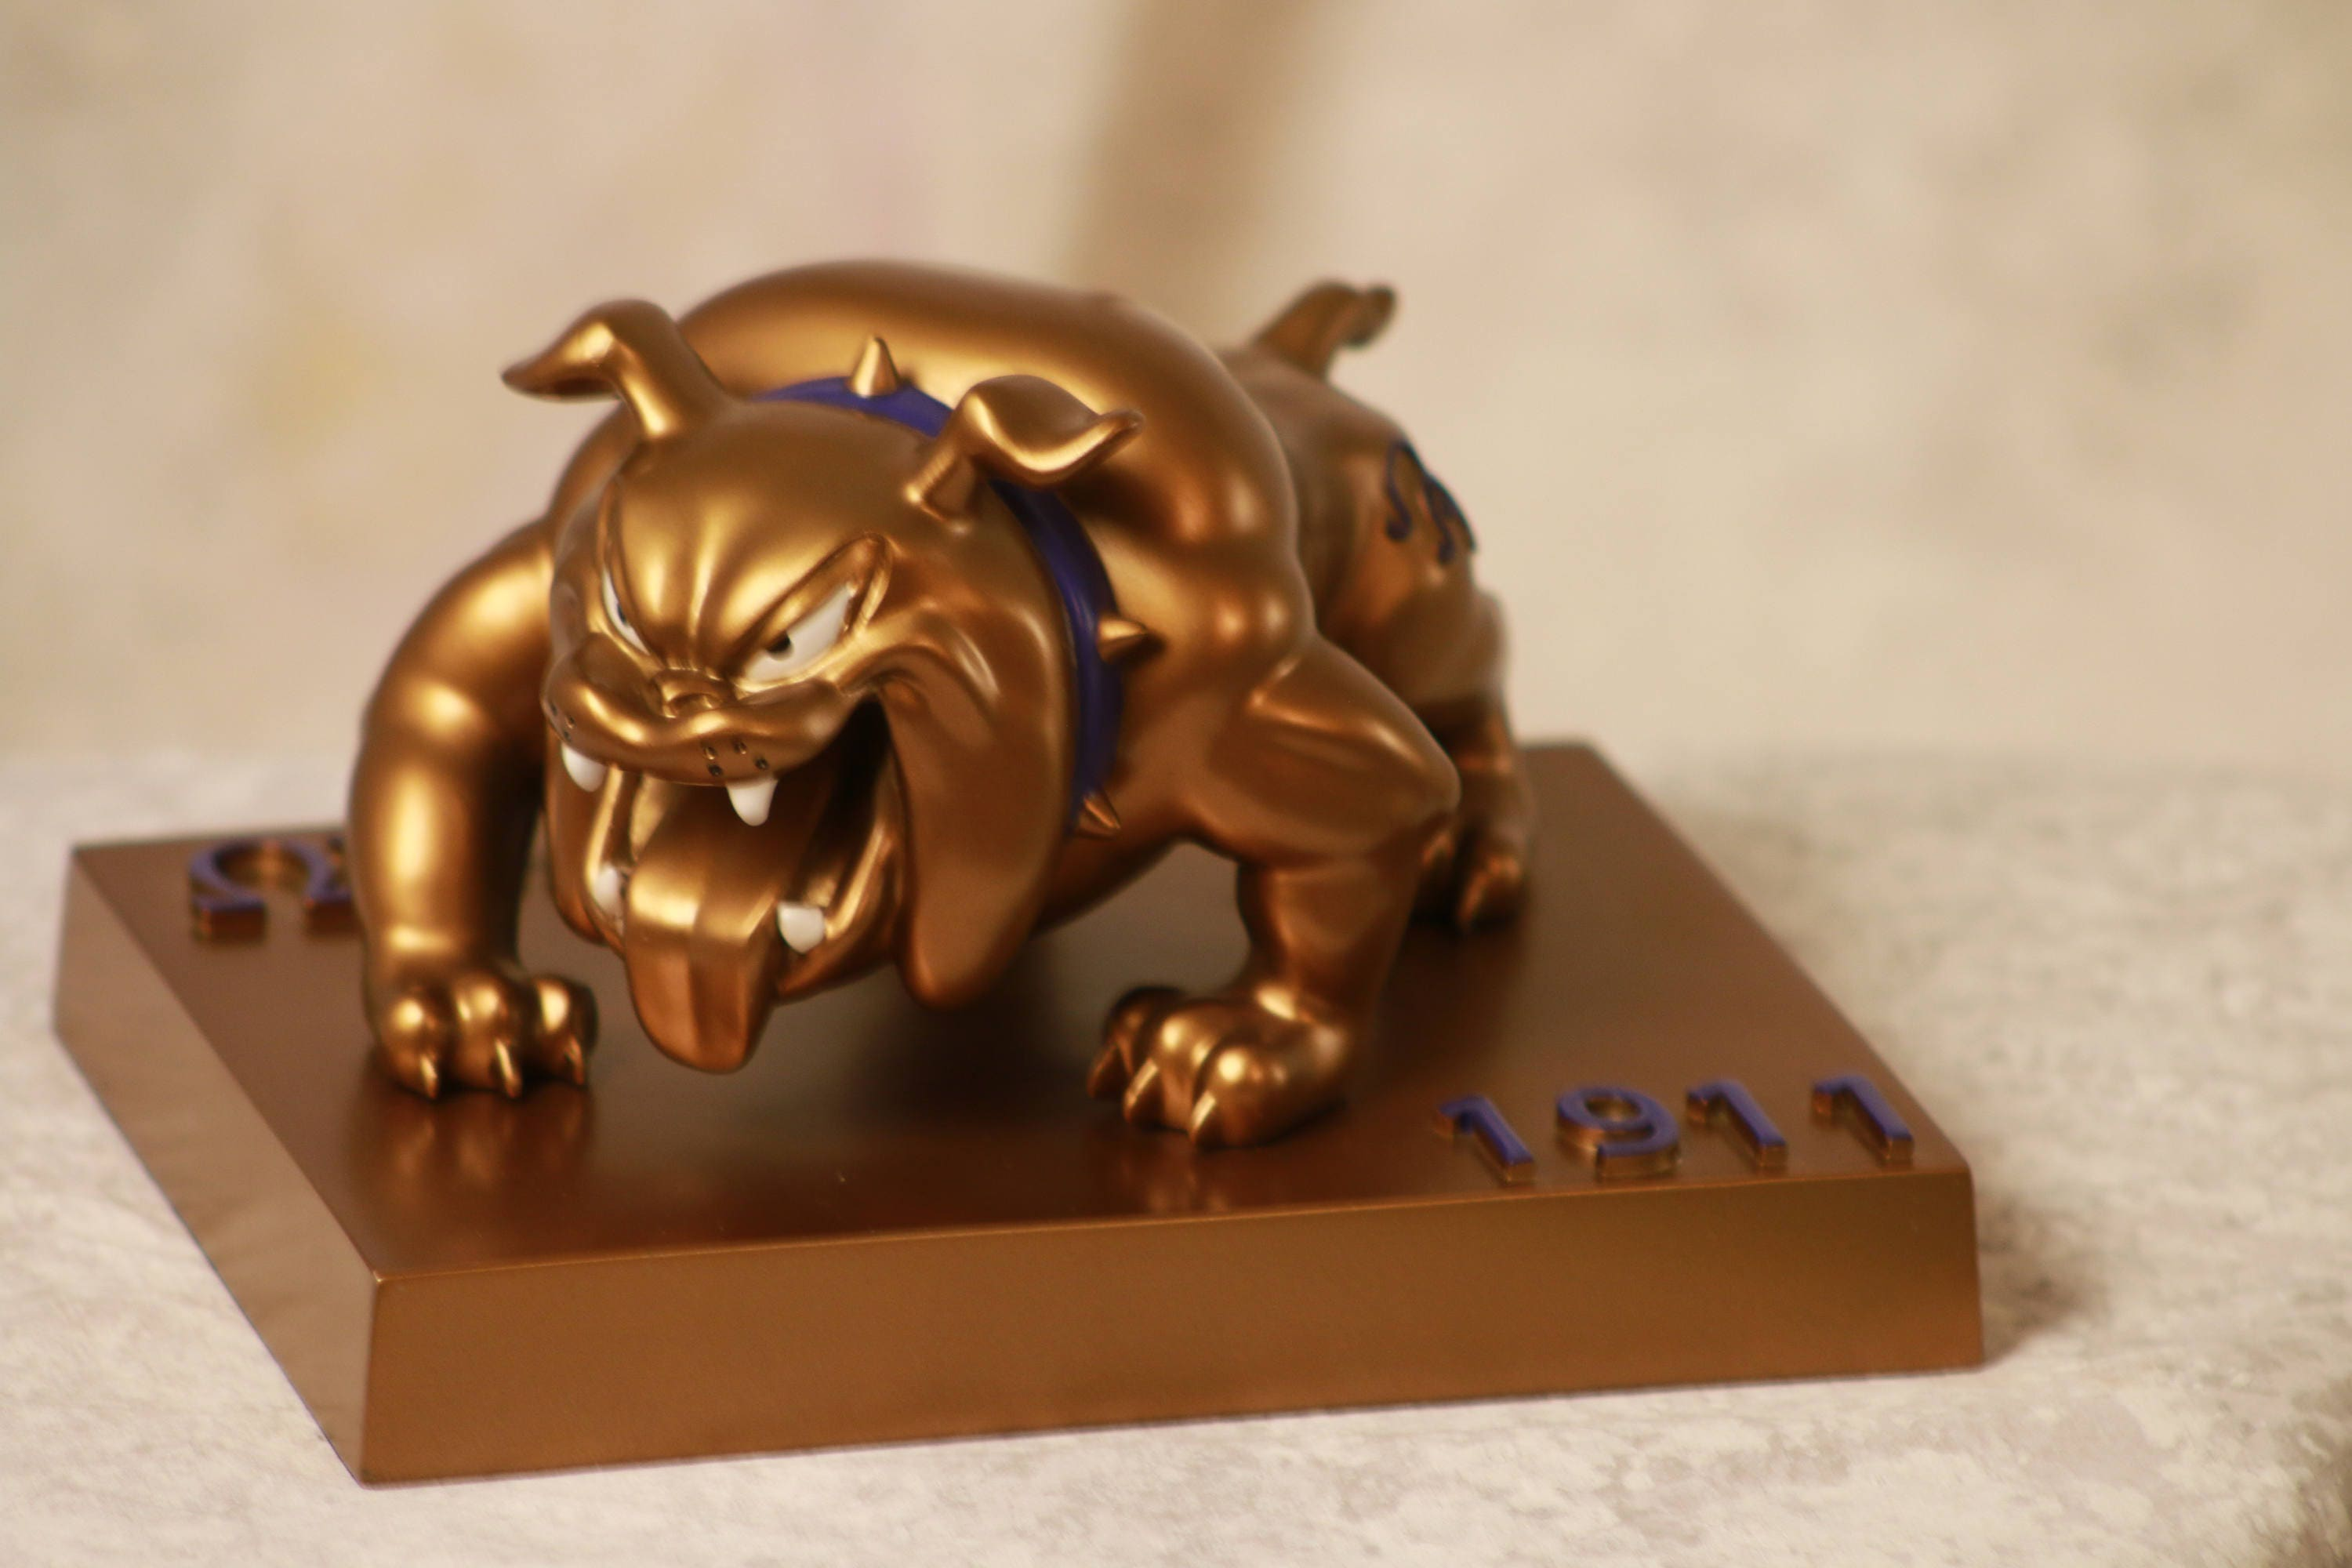 Omega psi phi dog omega psi phi fraternity gift que dawg zoom buycottarizona Image collections